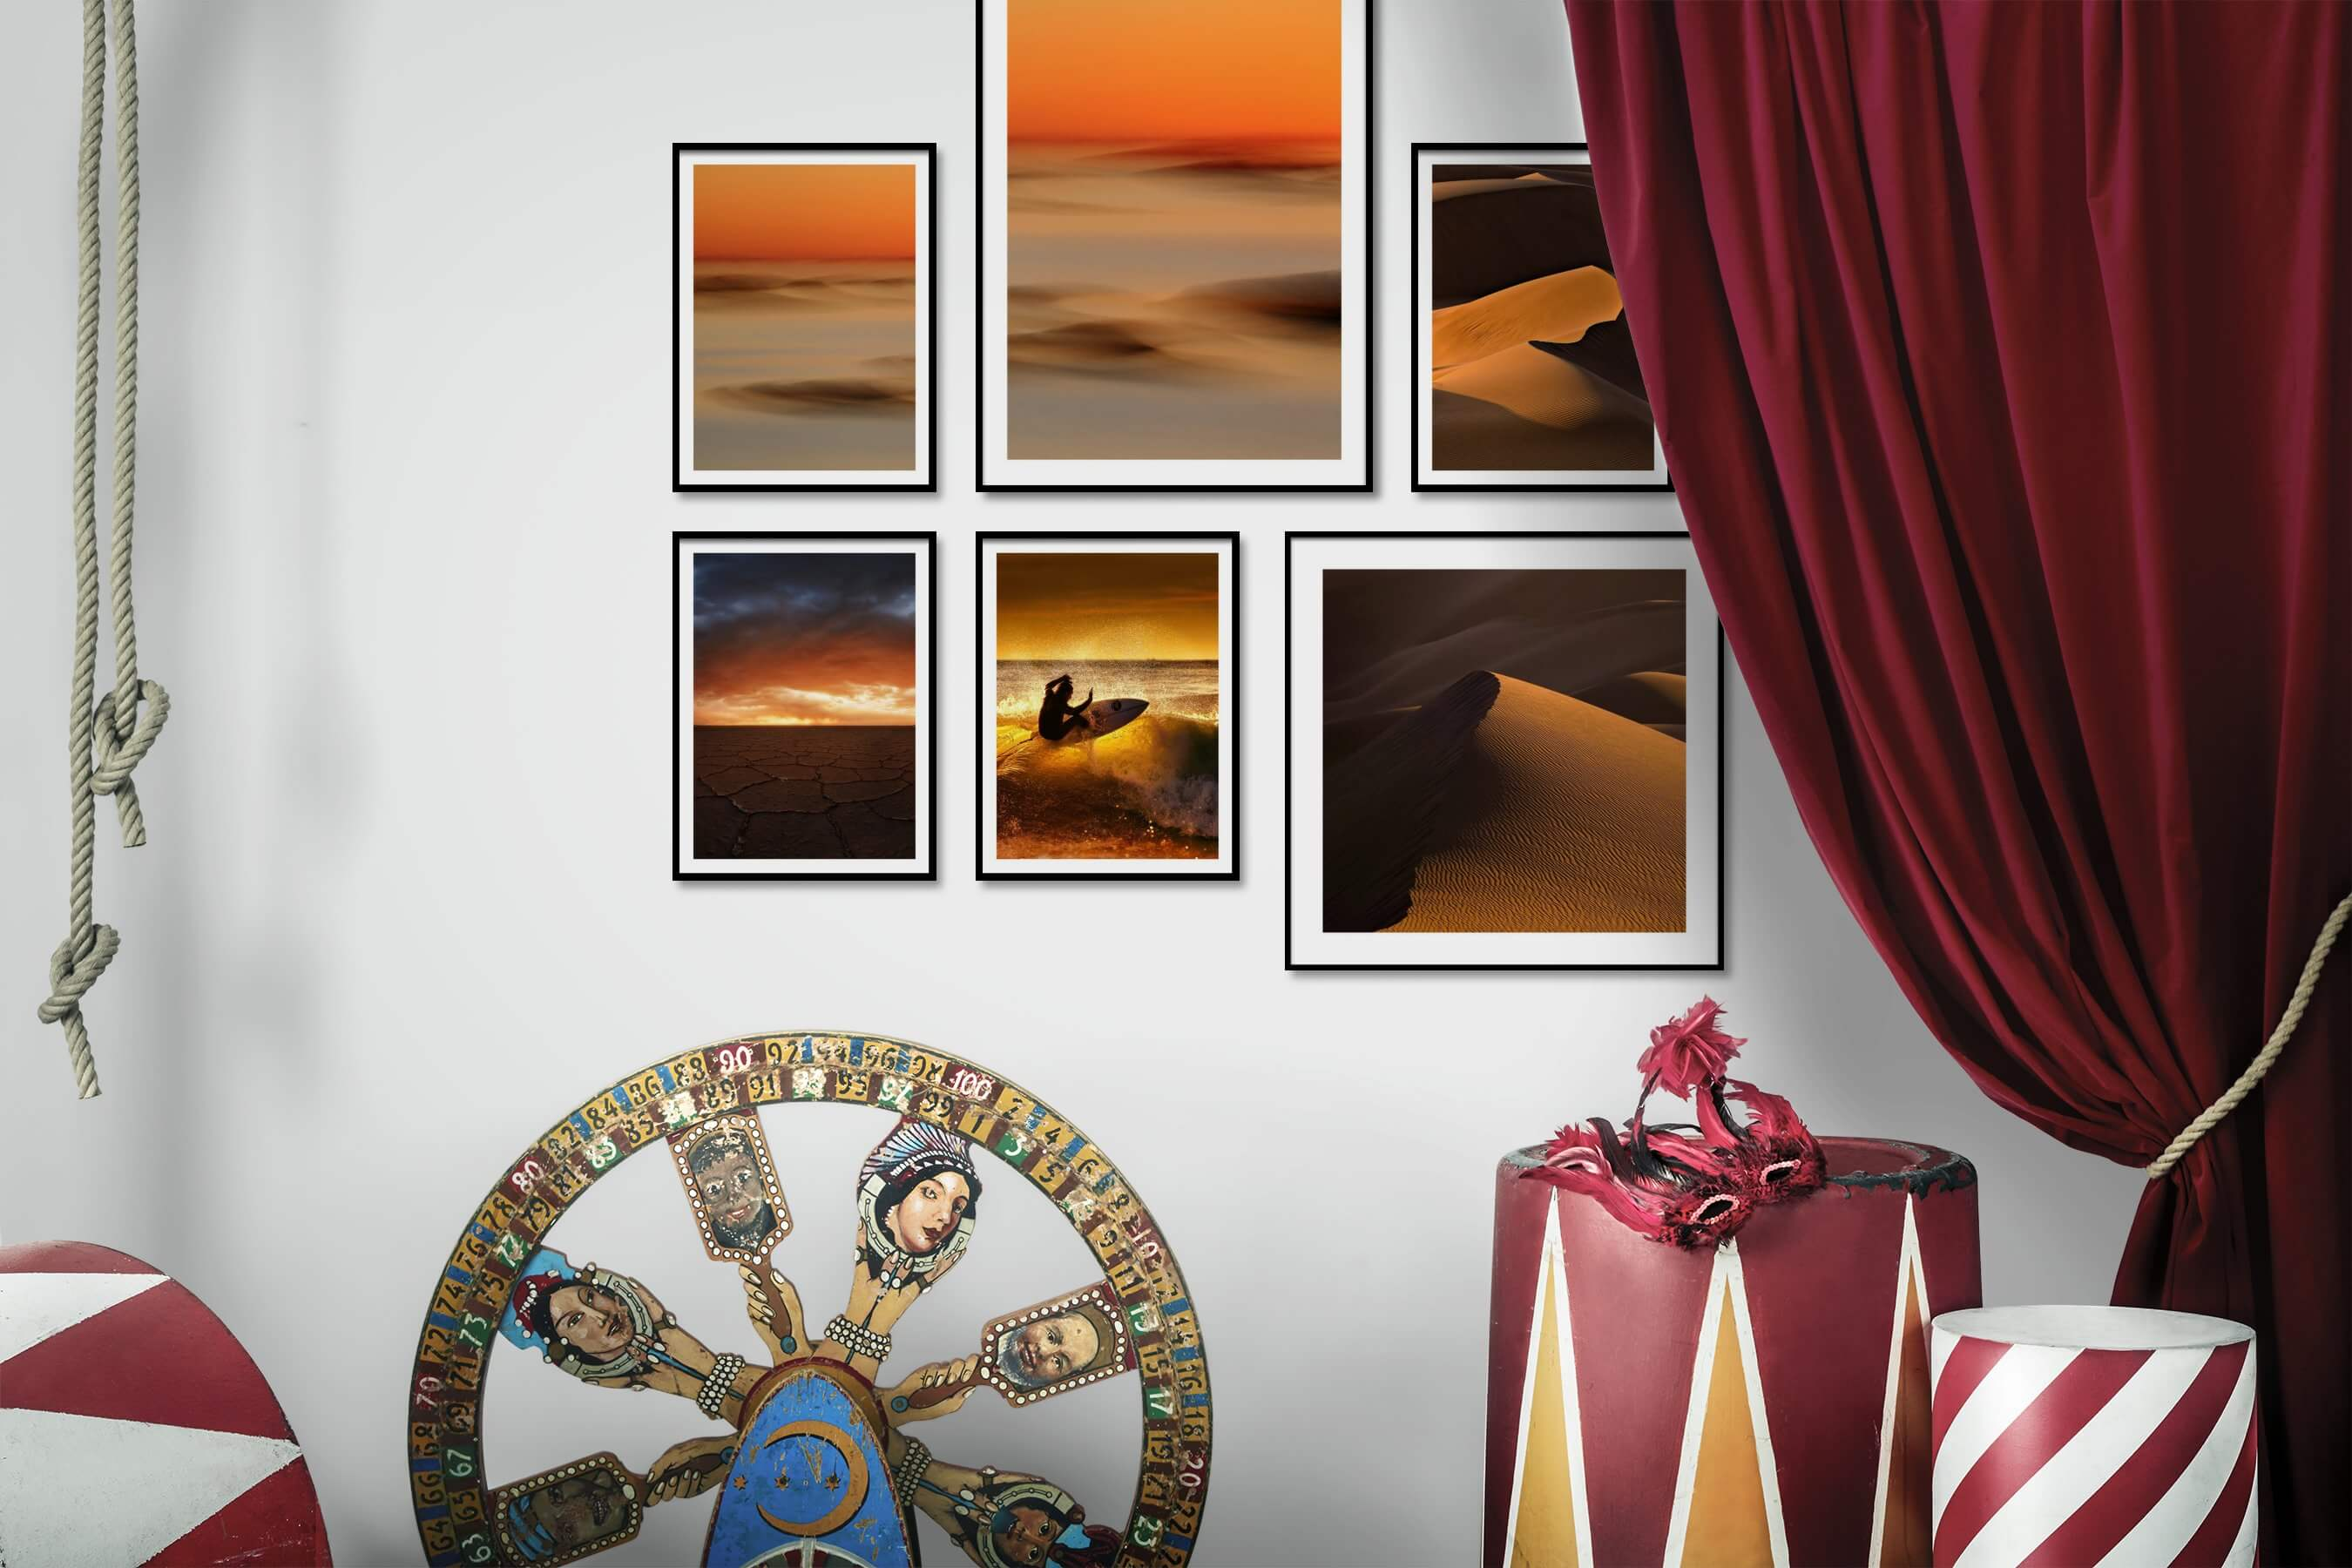 Gallery wall idea with six framed pictures arranged on a wall depicting For the Moderate, Nature, and Beach & Water